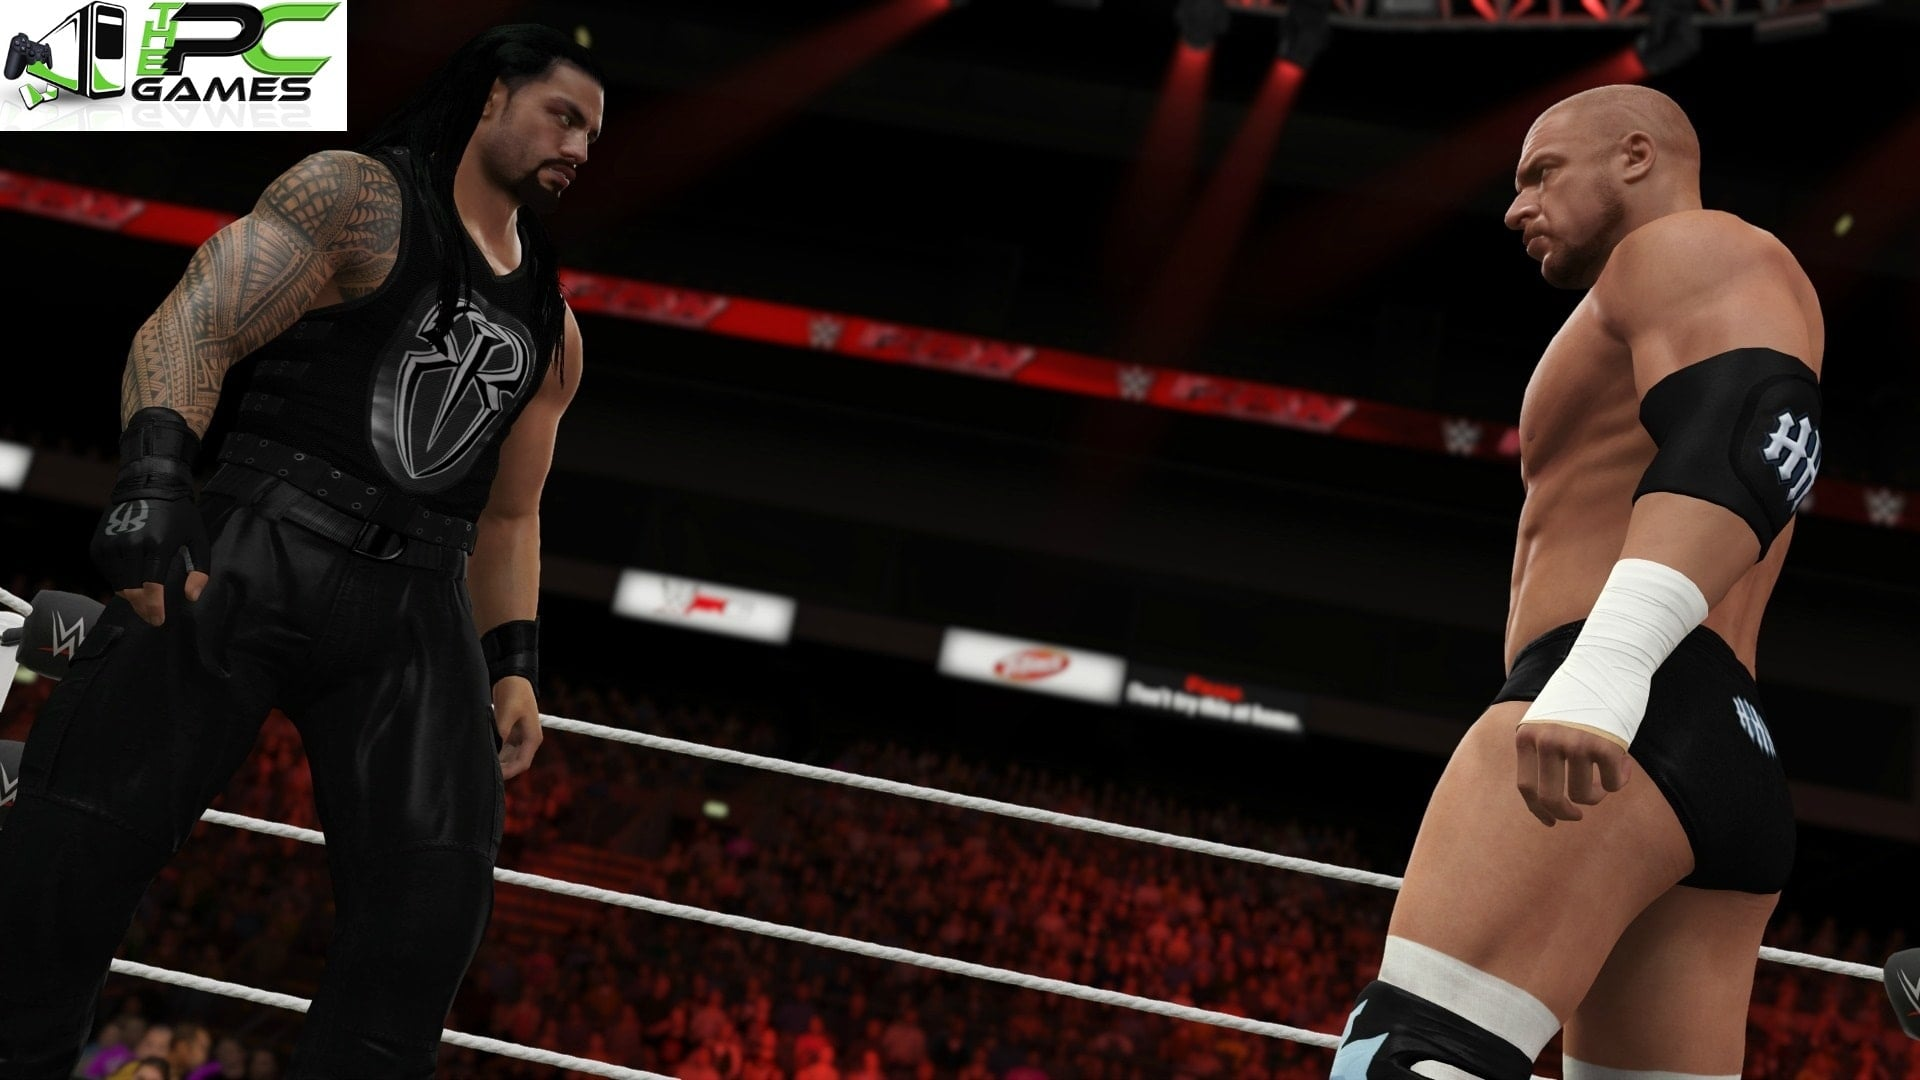 wwe games free download for pc 2016 full version